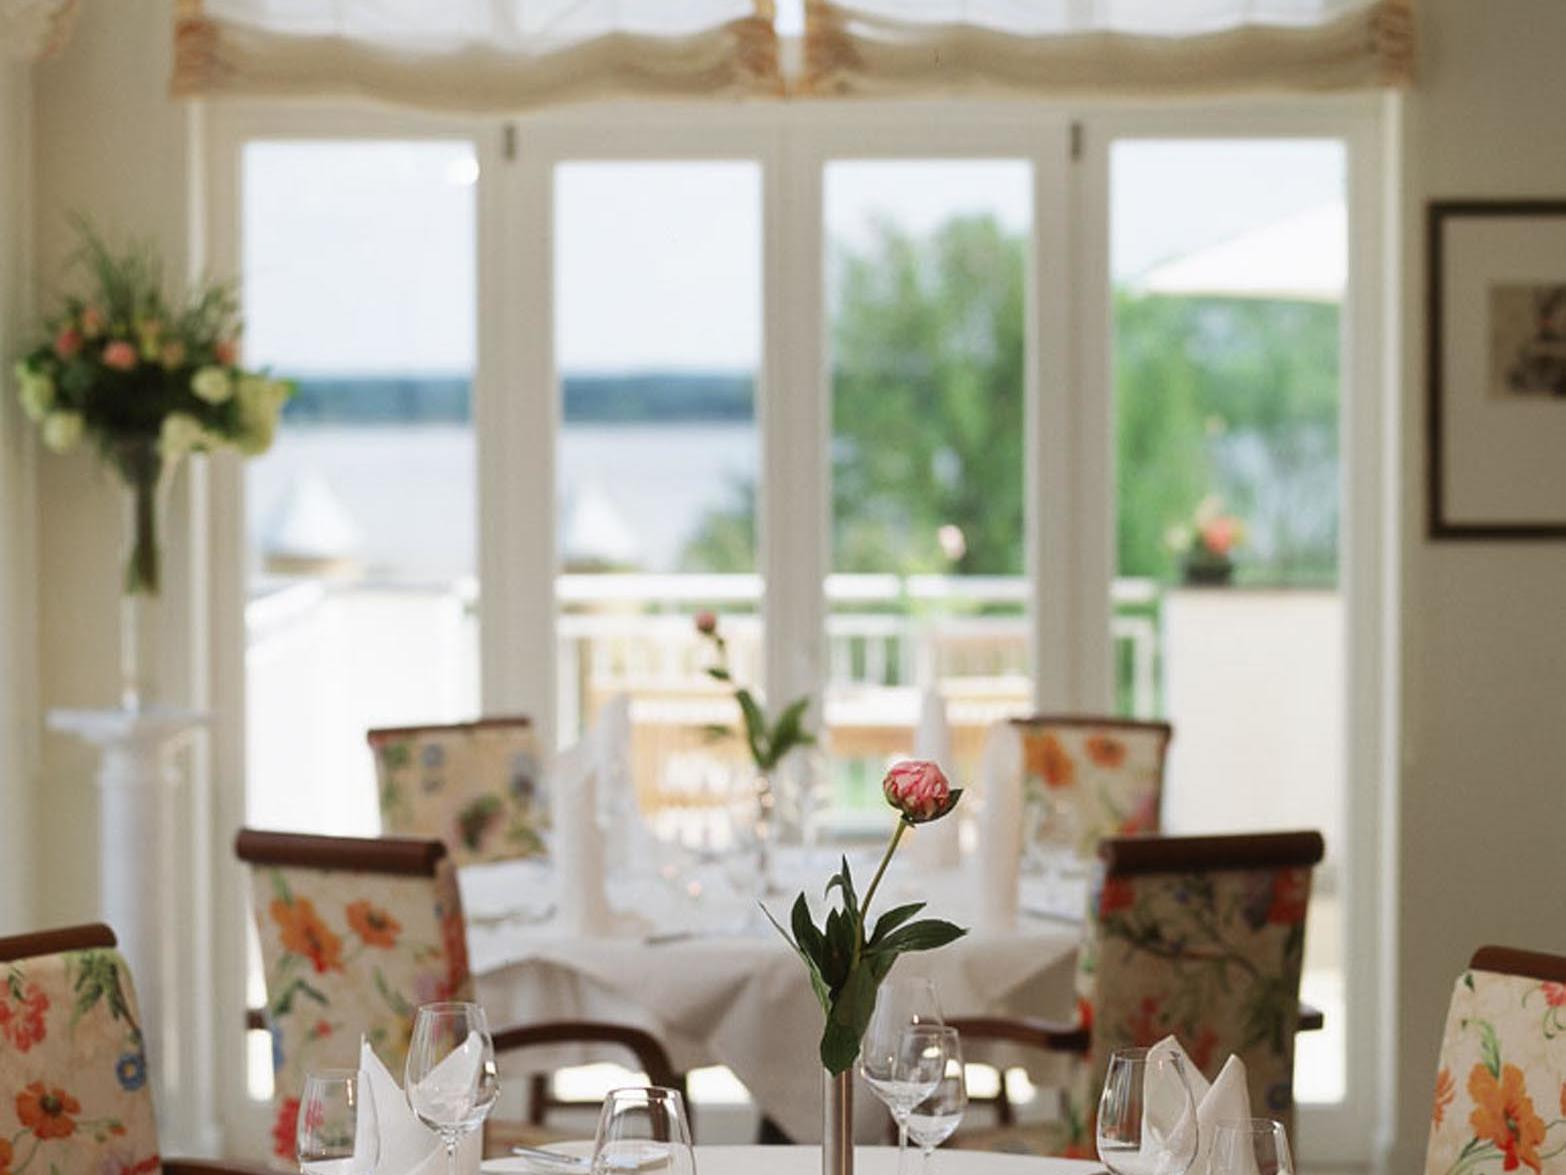 Restaurant seapoint at Precise Resort Schwielowsee